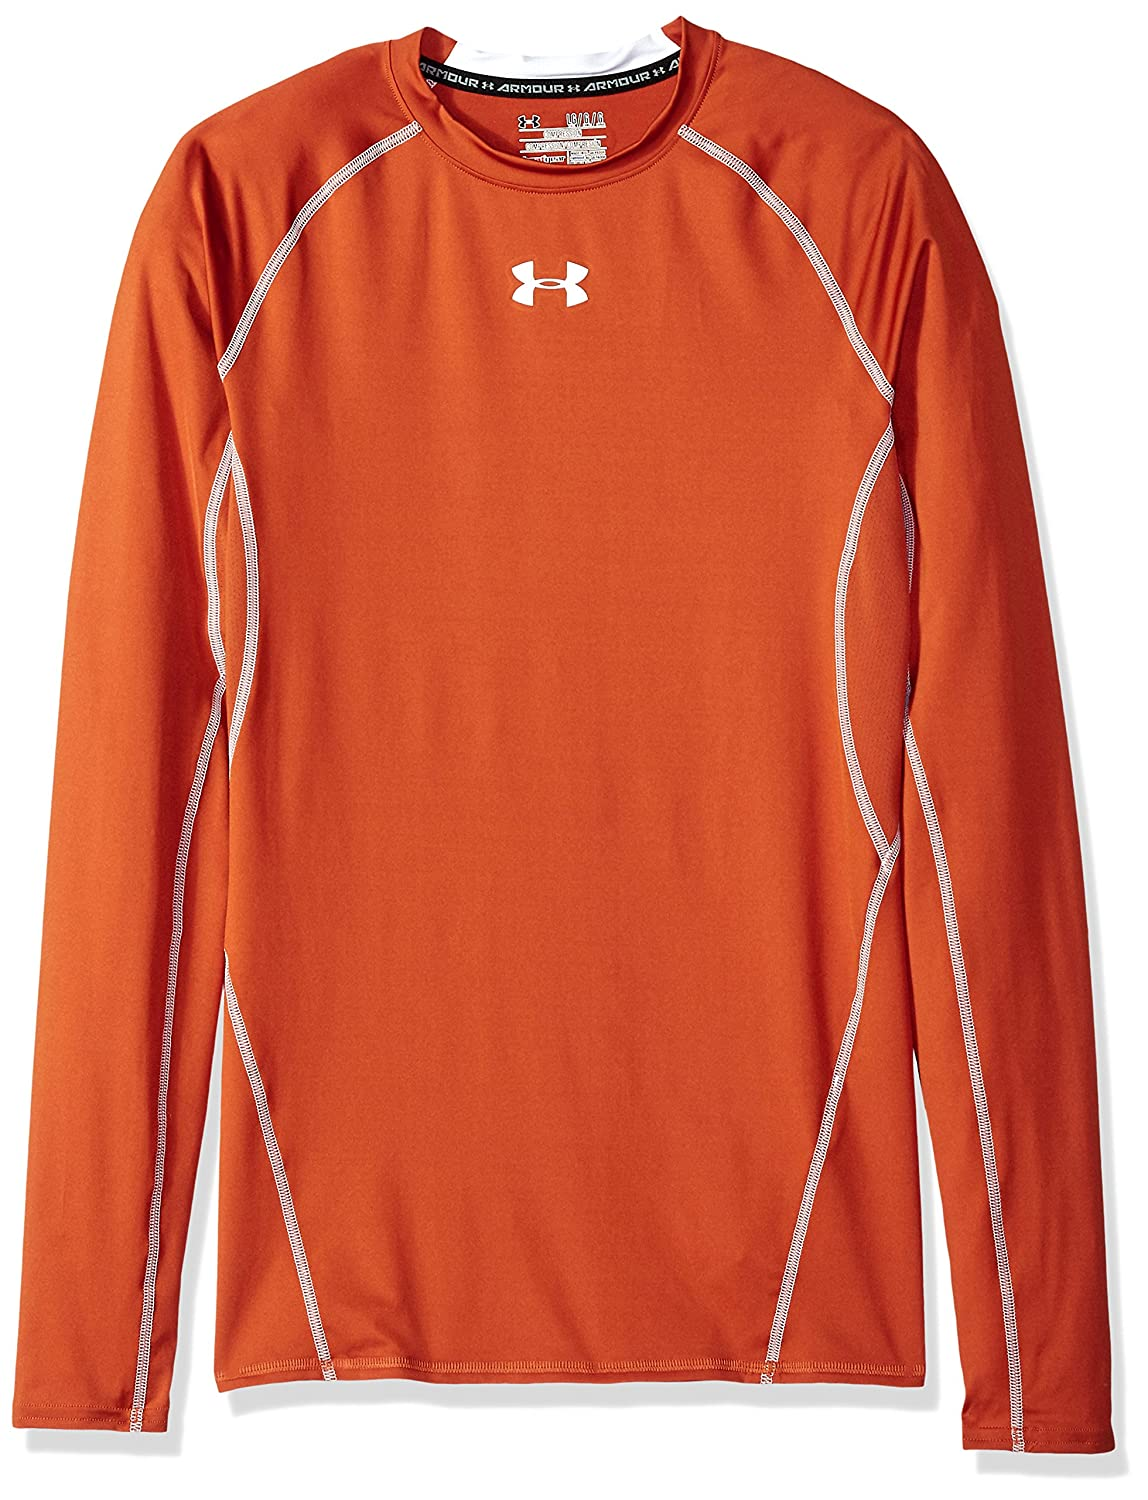 Under Armour Men& 039;s HeatGear Long Sleeve Compression Shirt, Texas Orange/Weiß, Medium